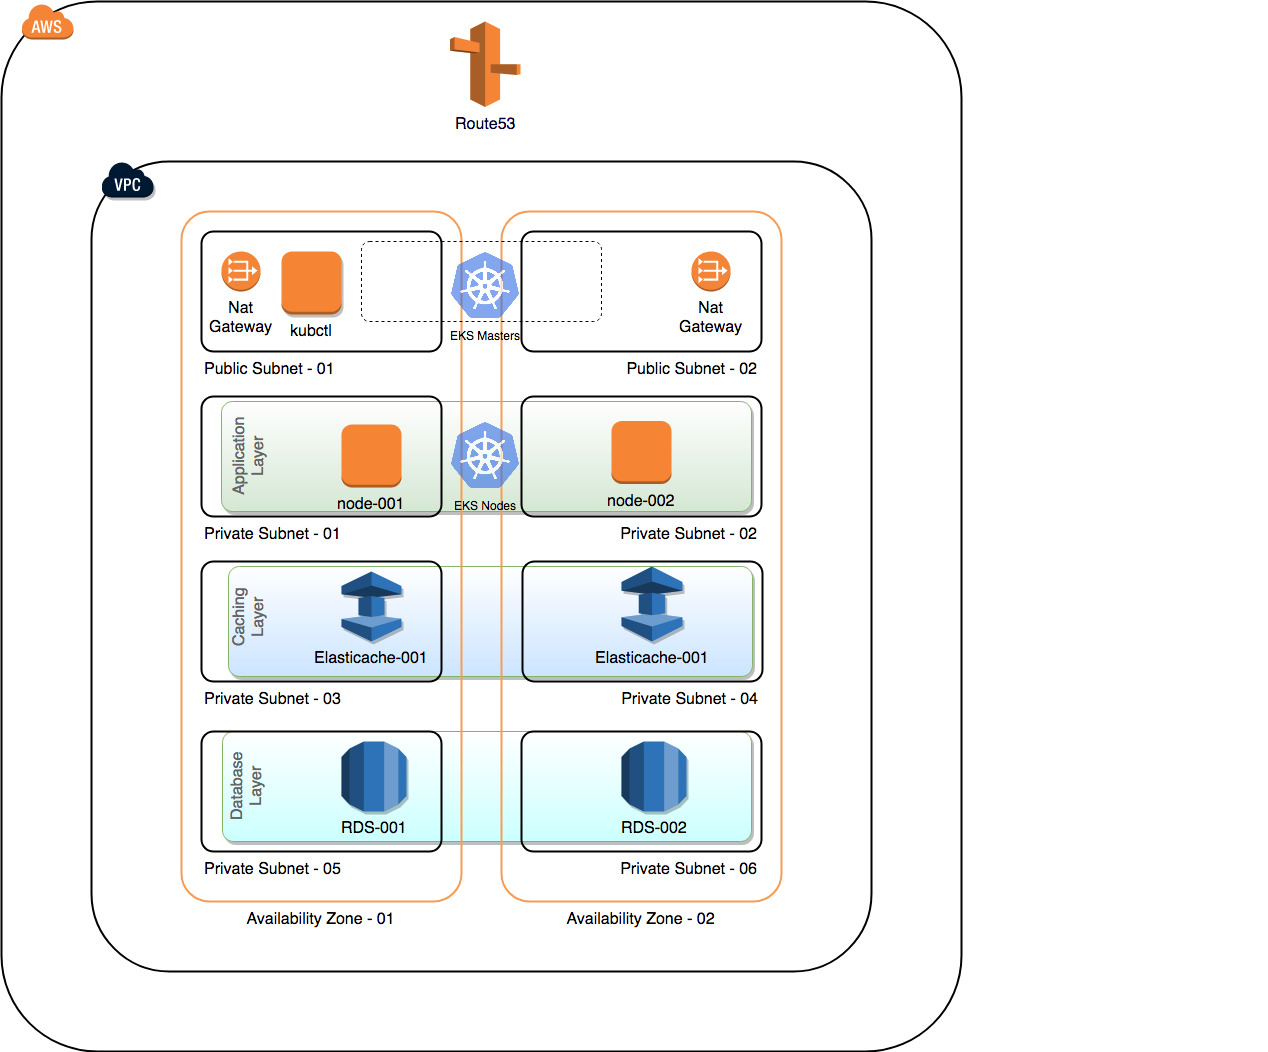 First look into AWS EKS - Getting started